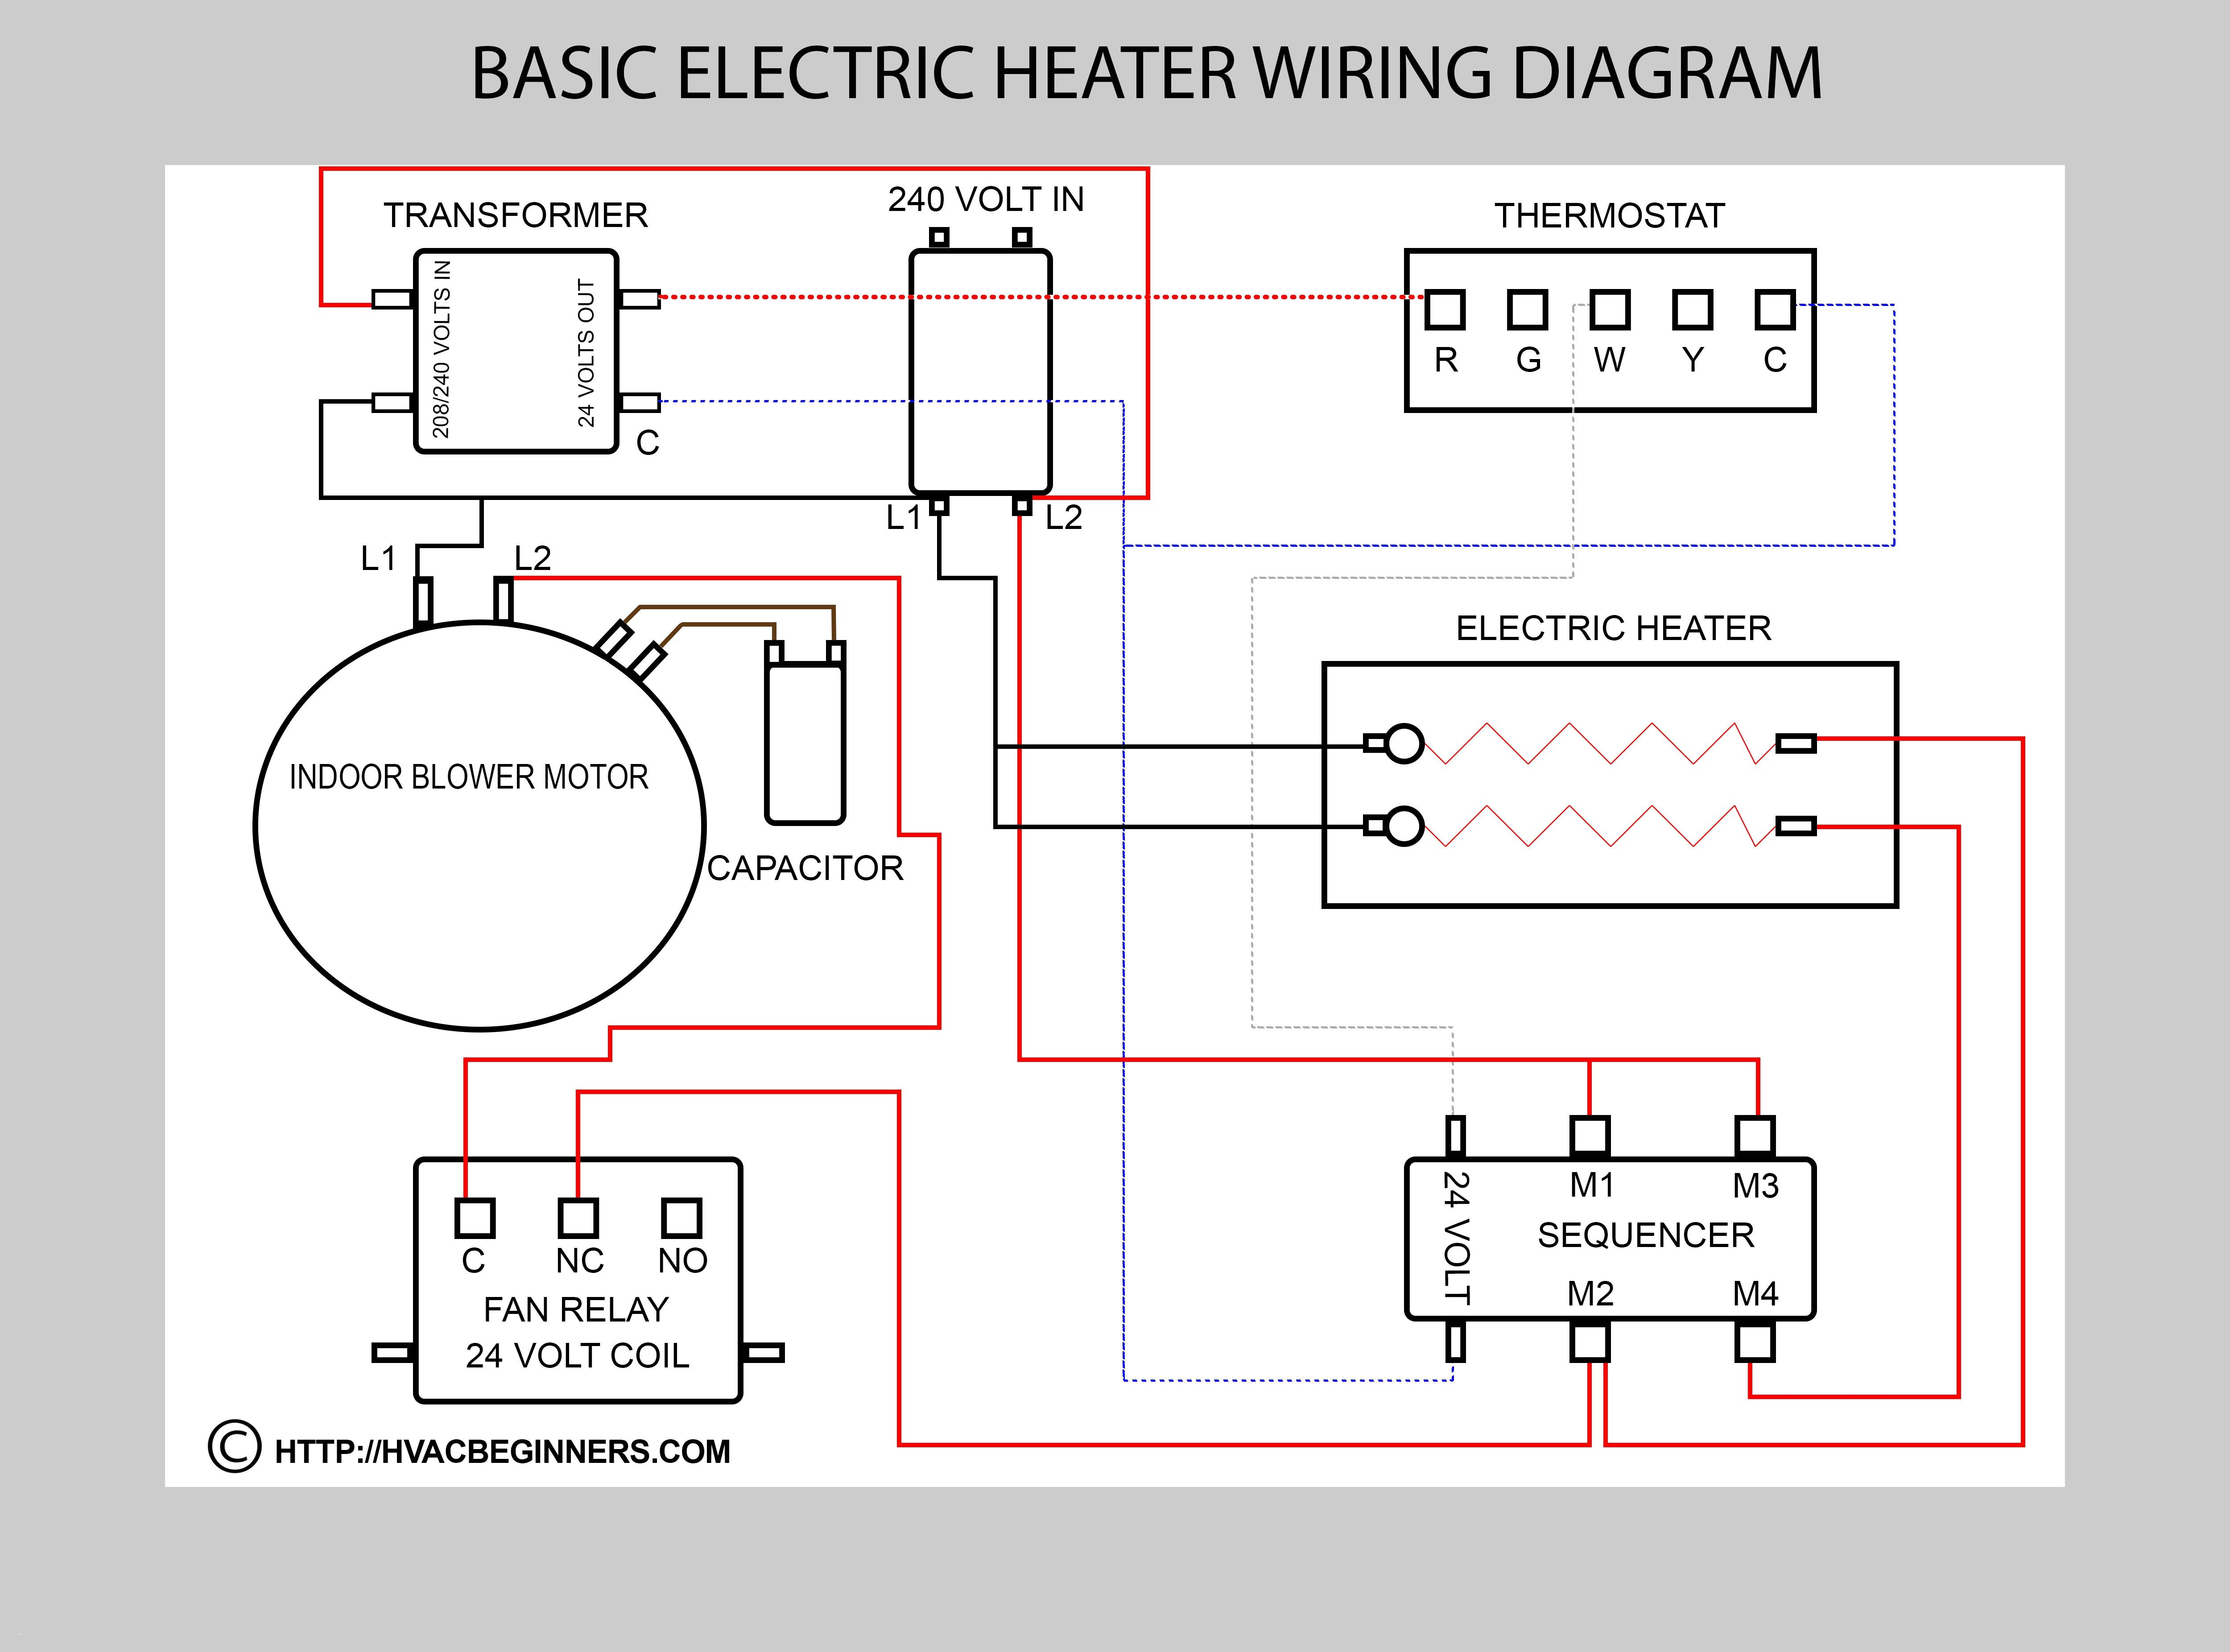 central air conditioner wiring diagram Collection-central air conditioner wiring diagram Collection Carrier Air Conditioning Unit Wiring Diagram Fresh Ac Unit 8-j